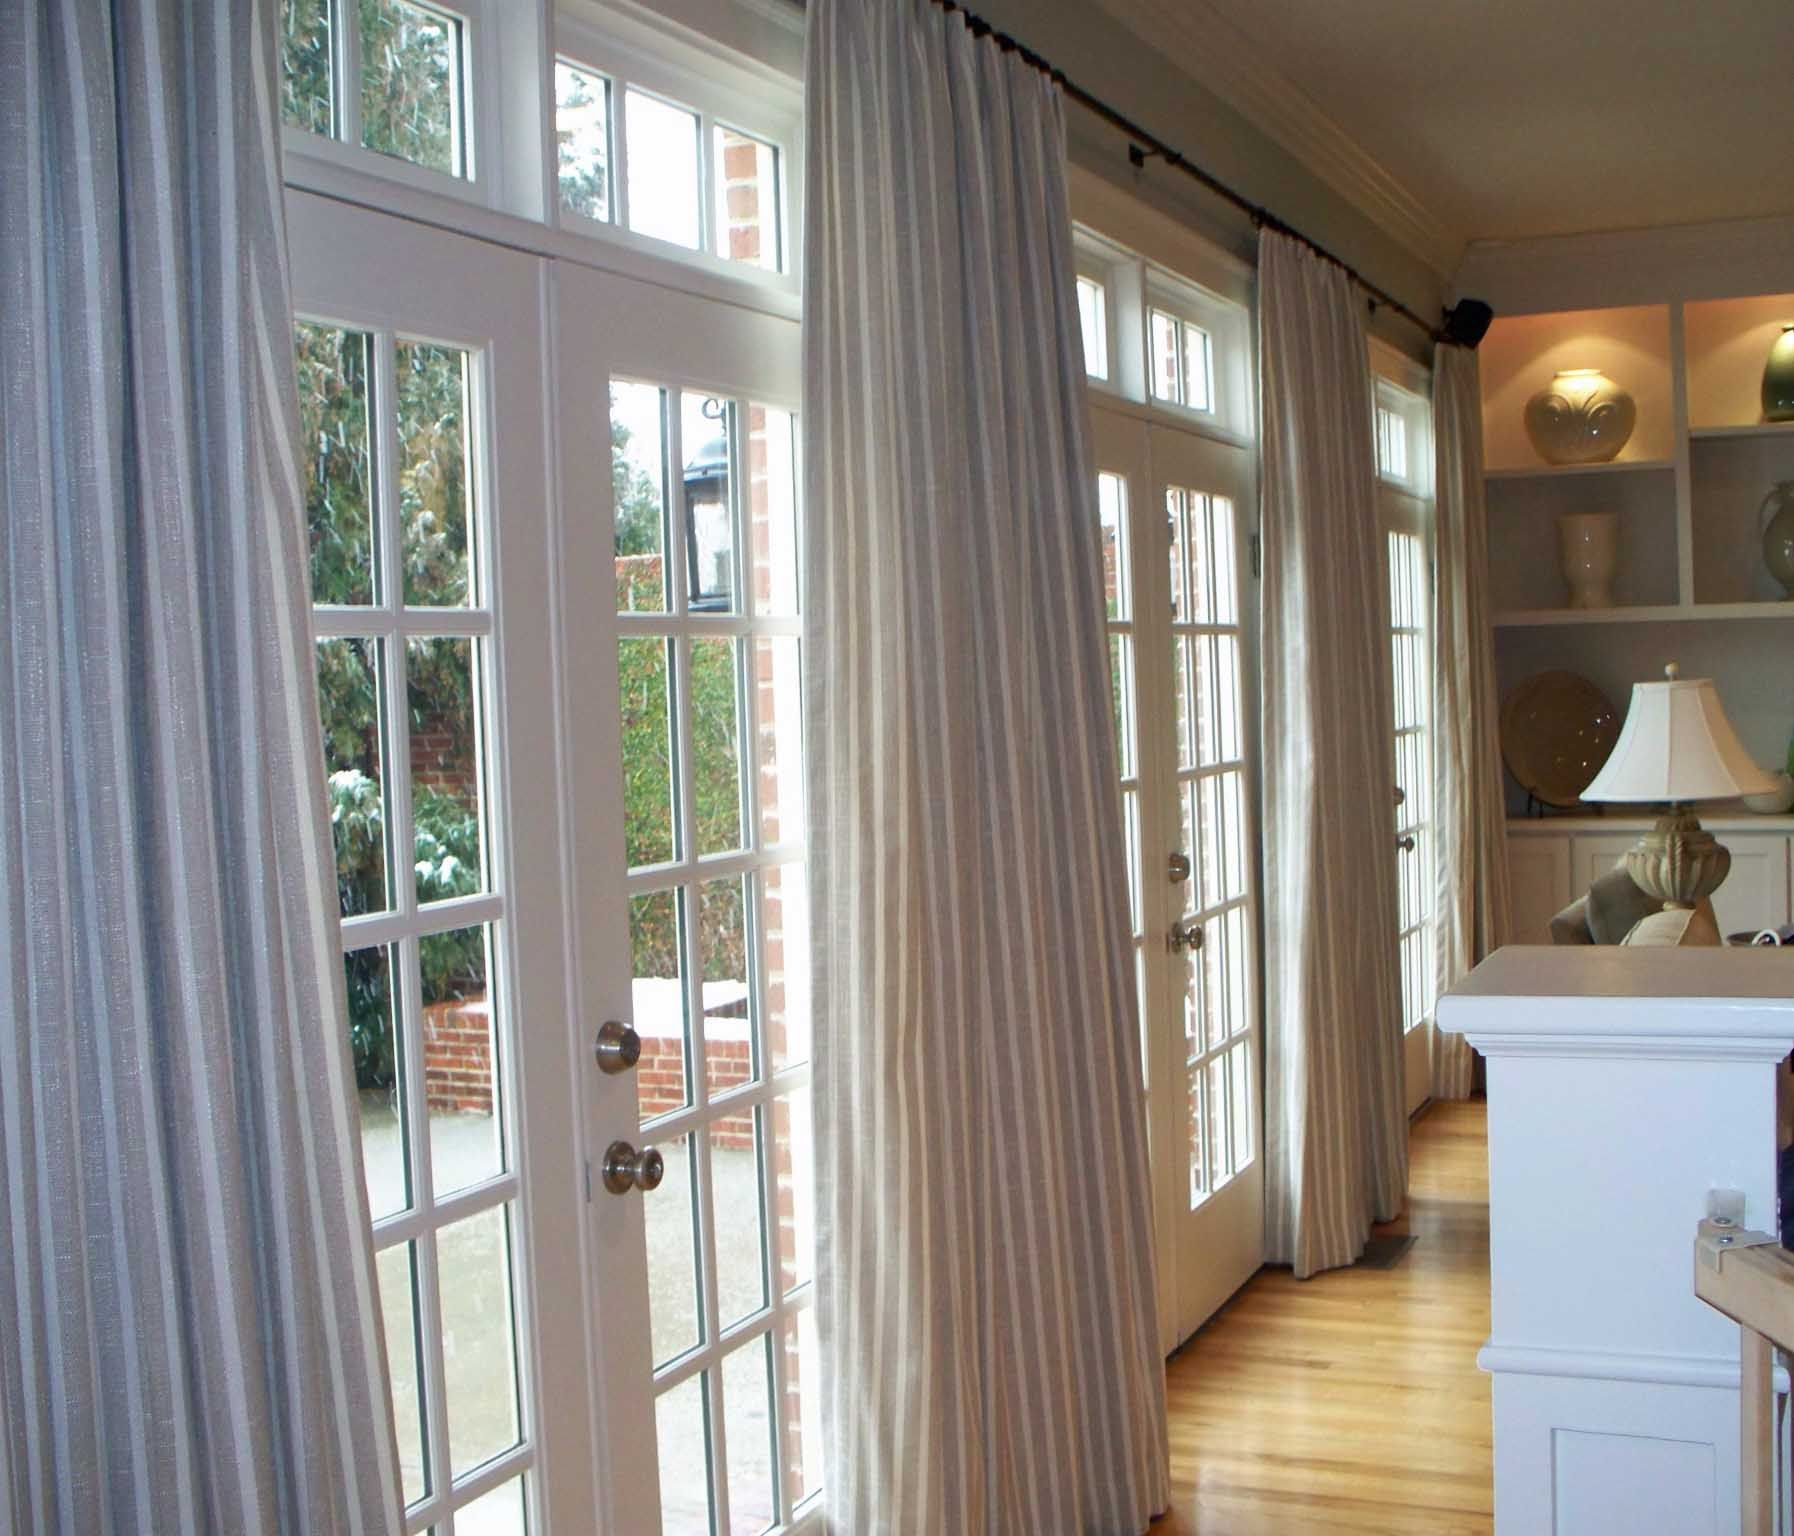 Window Treatments For Sliding Glass Doors Drapes Curtains Sliding Glass Door Curtains Sliding Door Curtains Sliding Glass Door Window